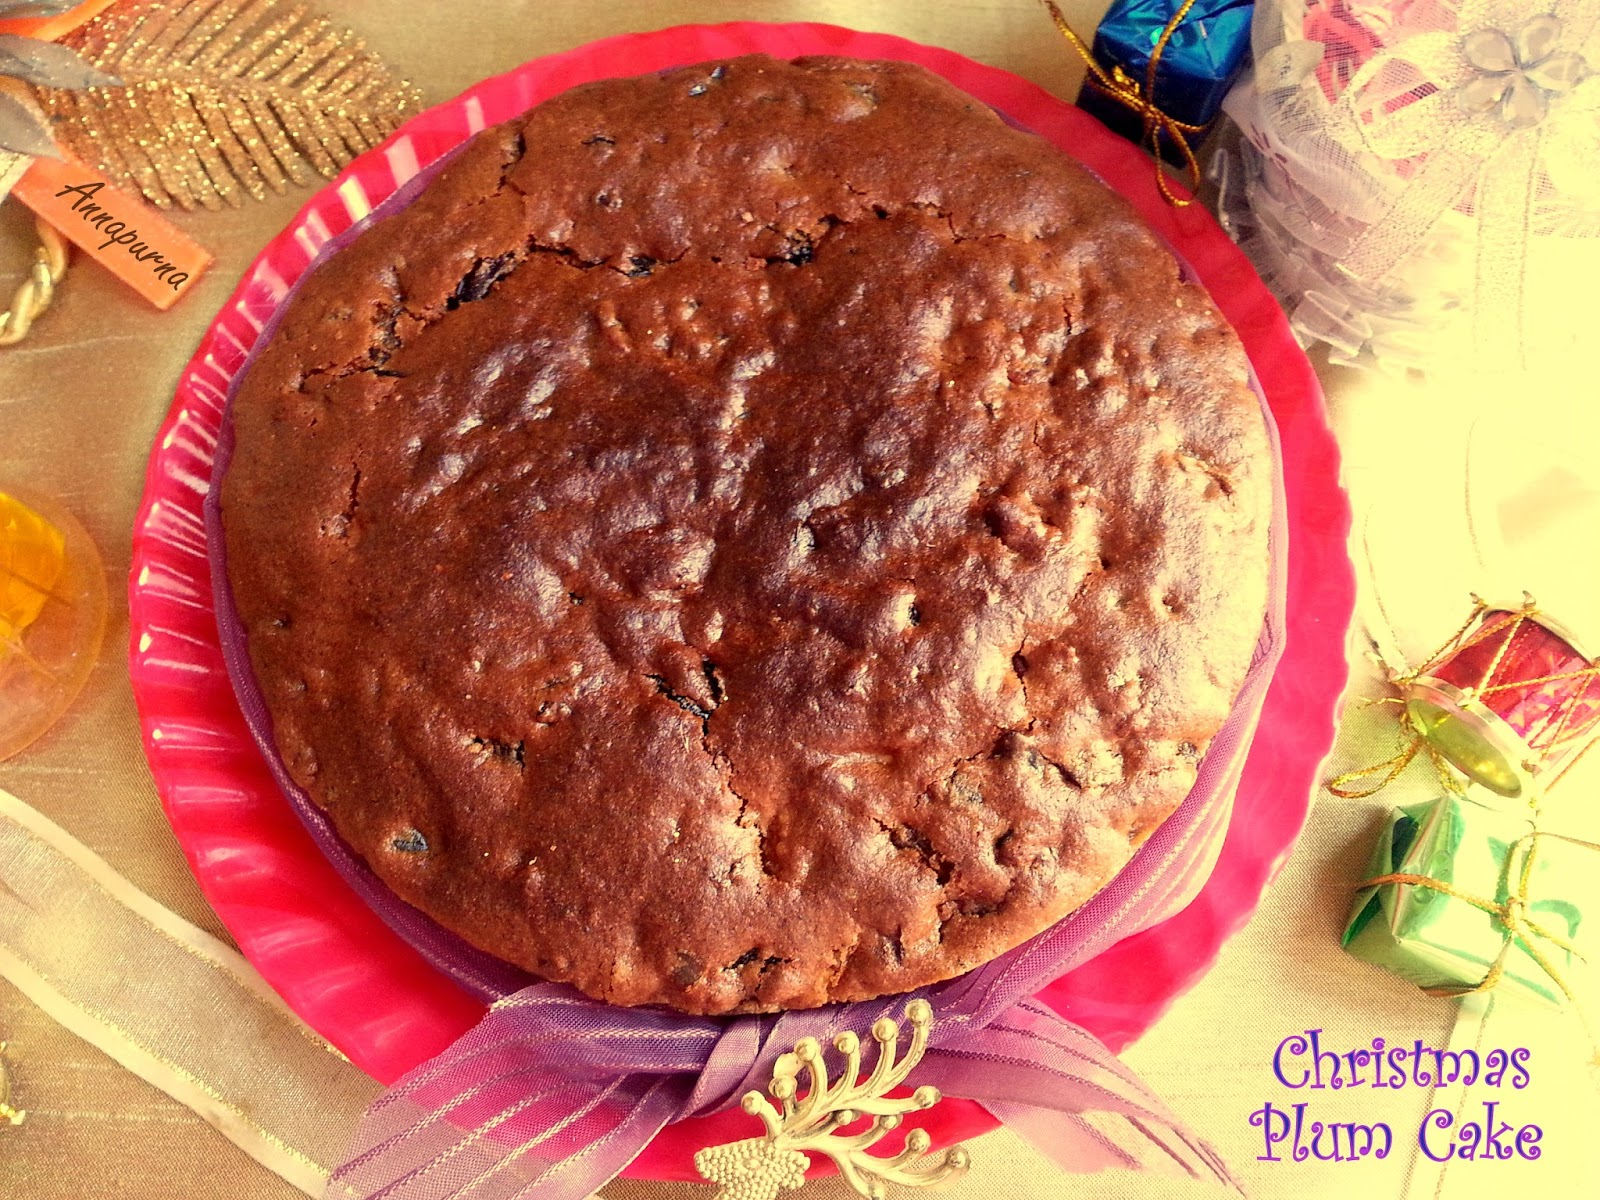 Indian food recipes indian recipes desi food desi recipes christmas being just around the corner there is aroma of festive bakes in the air after my gingerbread cookies came out pretty well an egg less christmas forumfinder Choice Image